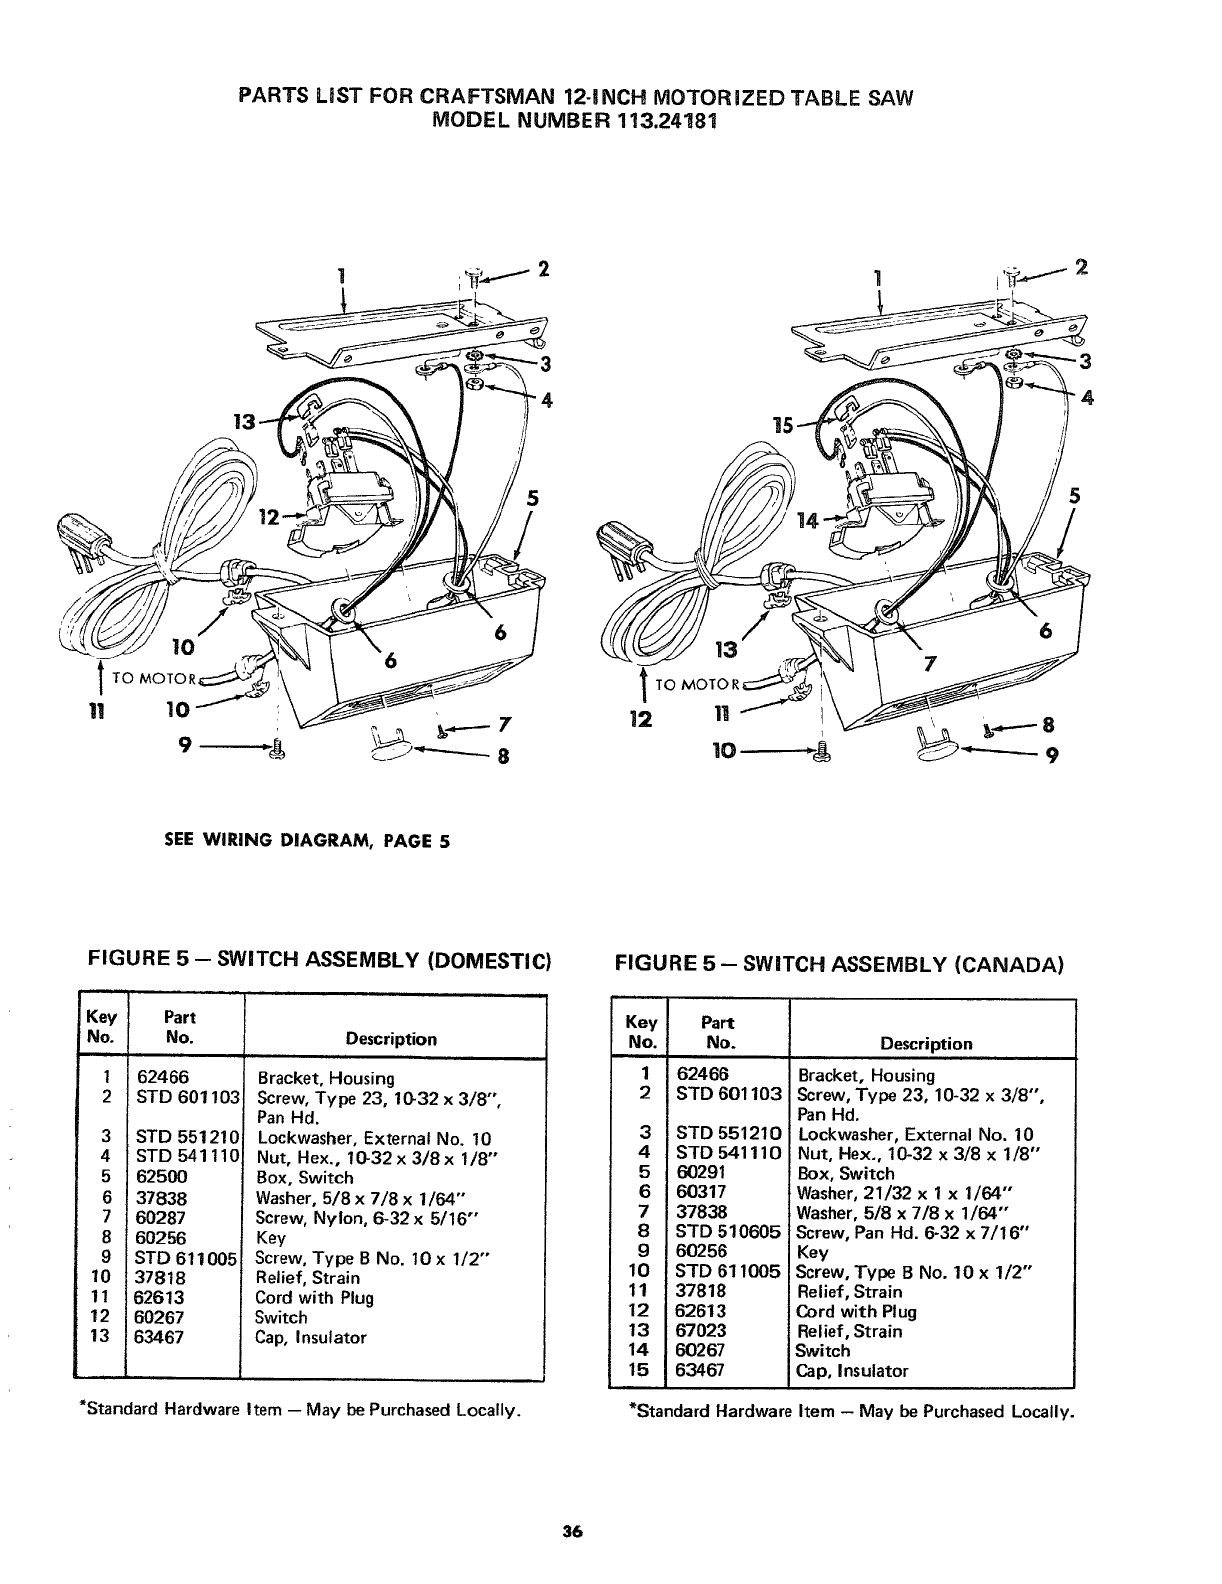 cffdc2e2 ba6b 43b2 a168 a3d4ed03dc5a bg24 table saw wiring diagram portable table saw wiring diagram \u2022 free Sears Craftsman 10 Inch Table Saw at readyjetset.co